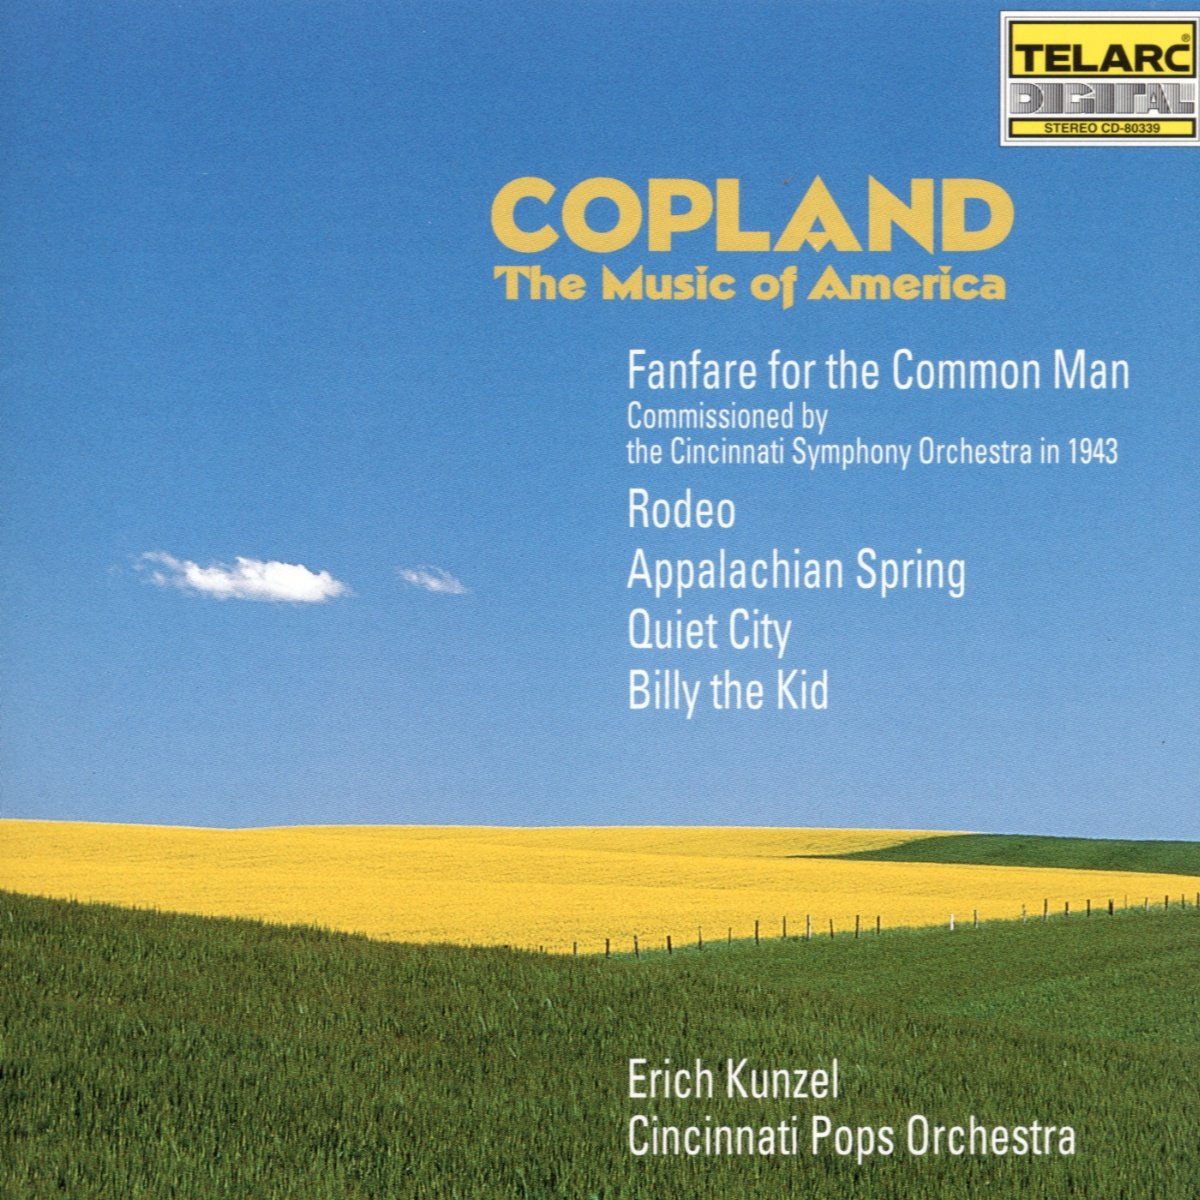 Copland: The Music of America by Telarc